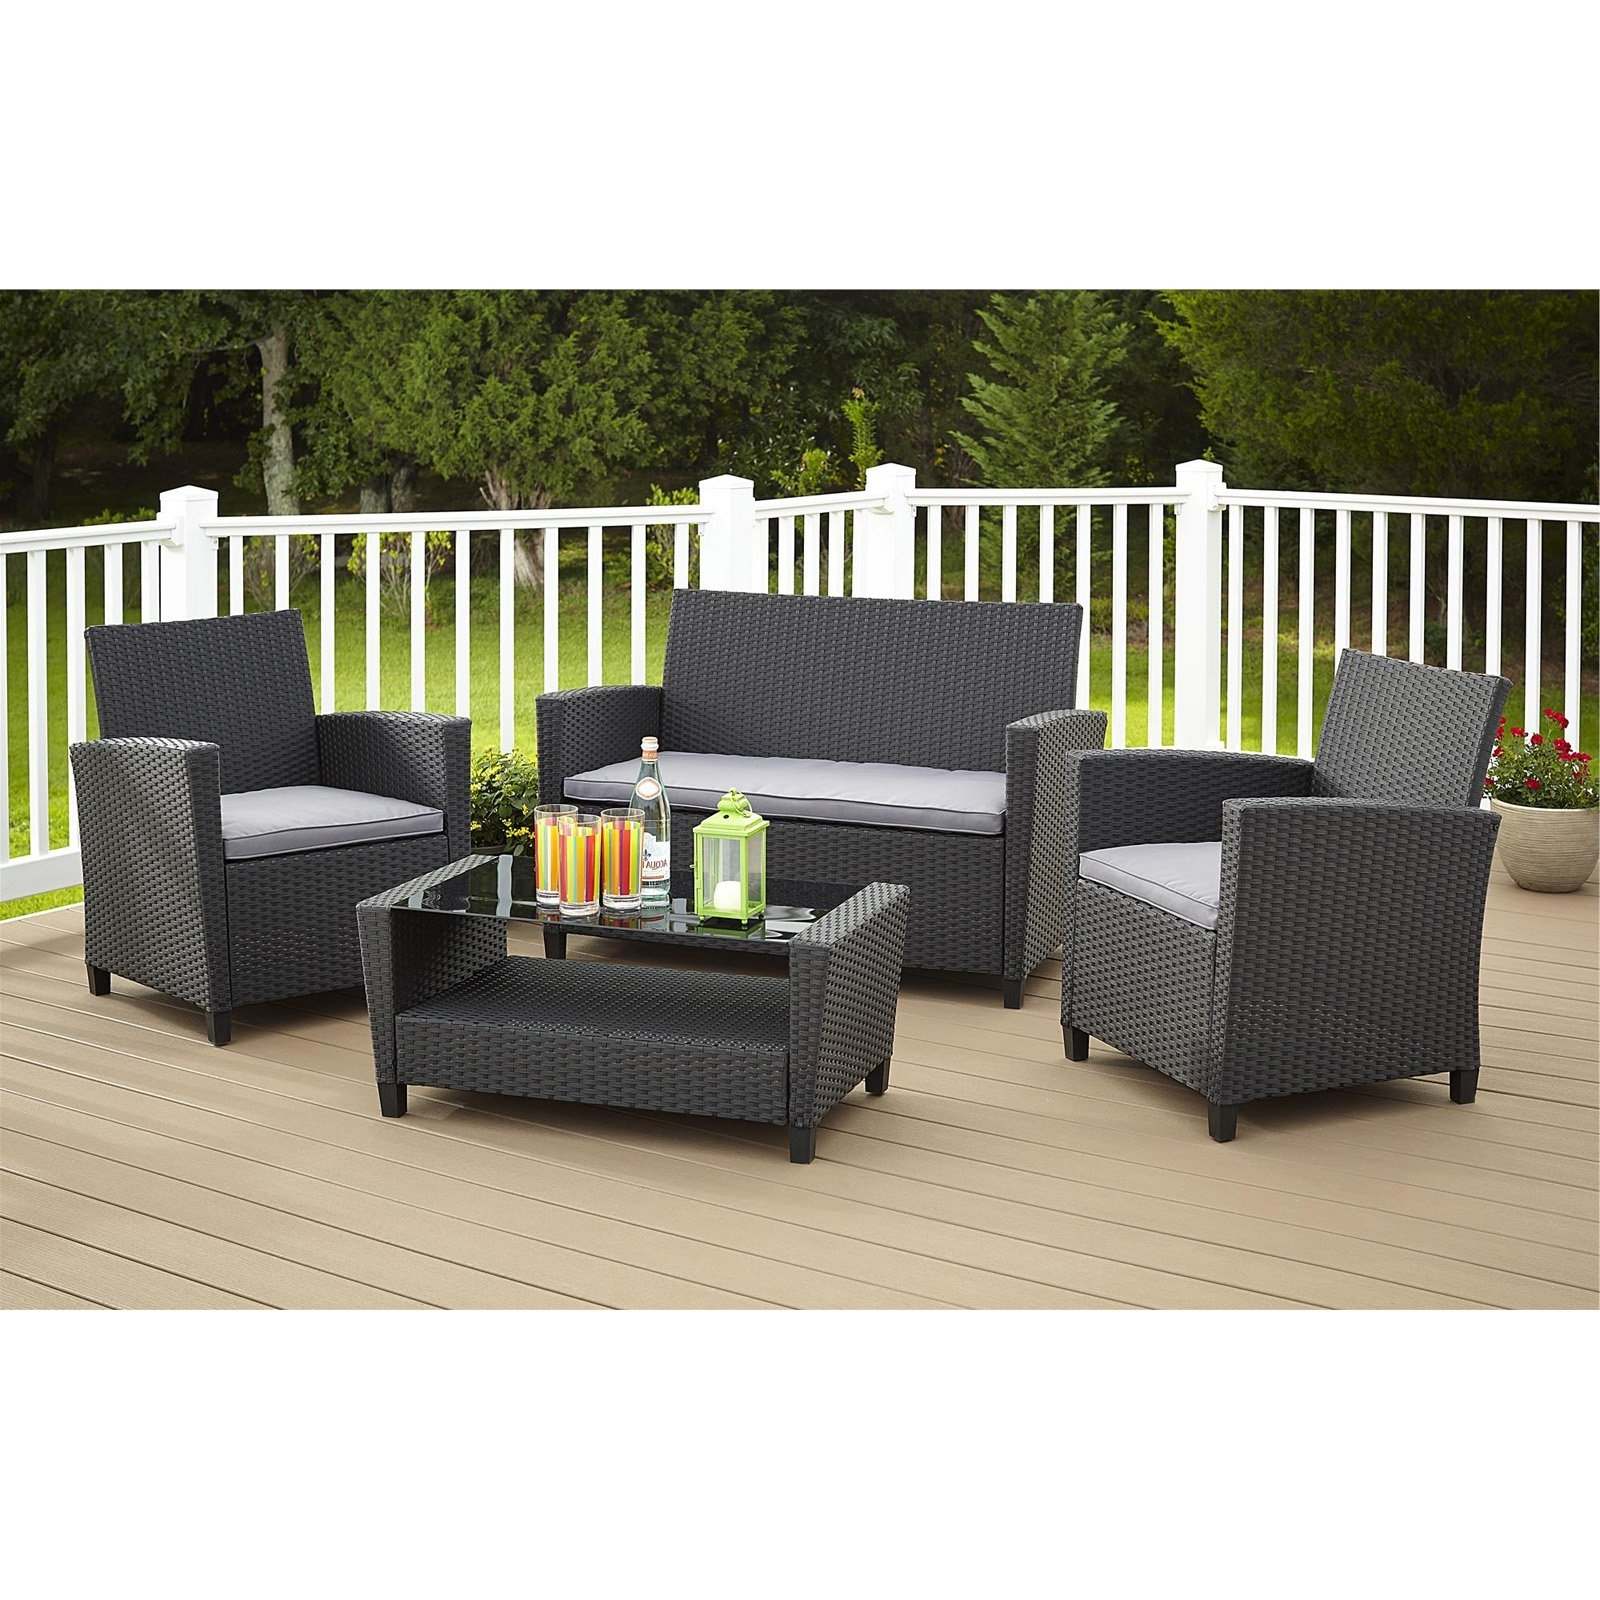 Widely Used Patio Conversation Set With Storage Pertaining To Indoor Conversation Sets Outdoor Sectional With Storage Home Depot (View 12 of 20)